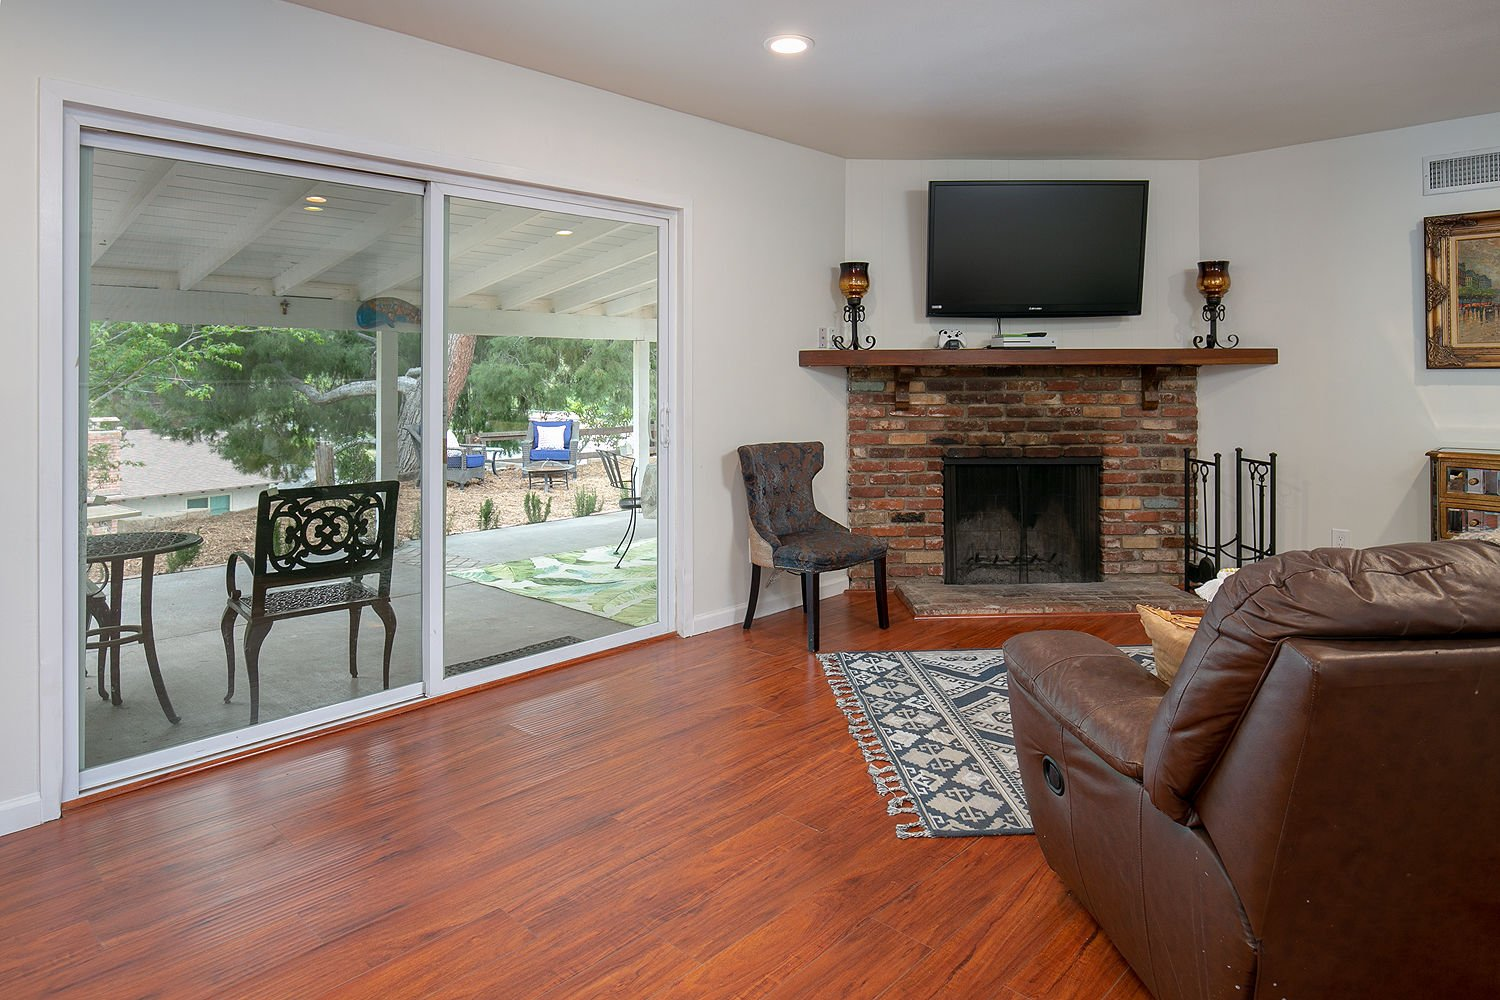 3 Bedroom, 2 Bath Midcentury Ranch Under $650,000 in the Foothills! image 2